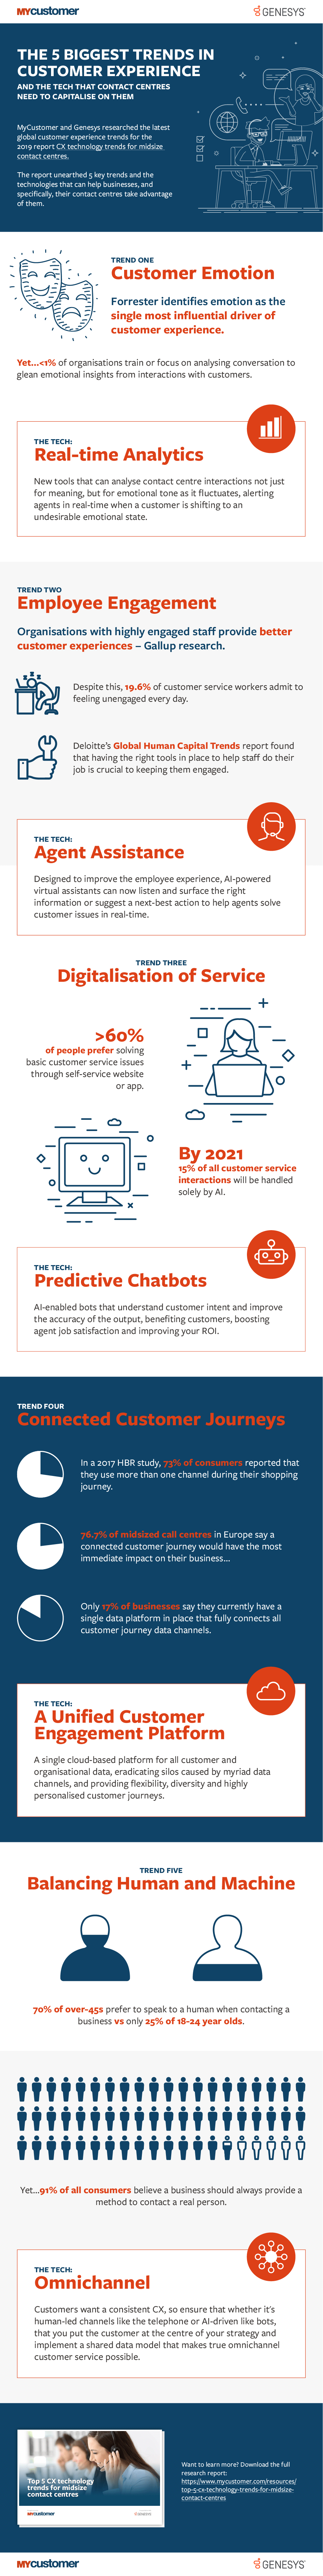 CX trends infographic